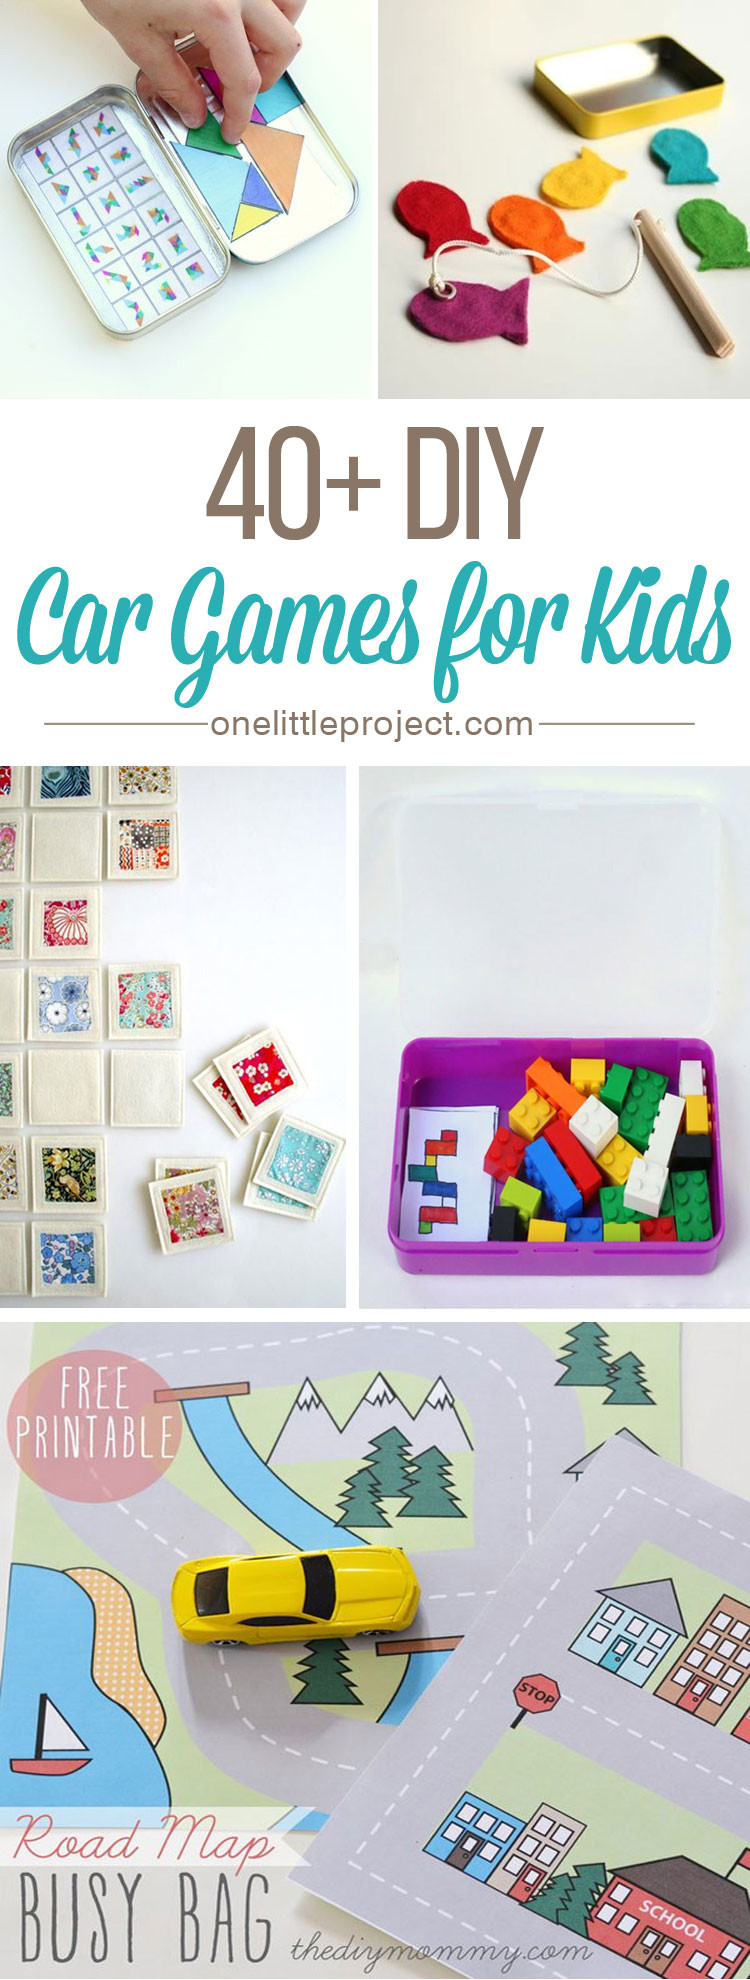 Best ideas about DIY Games For Kids . Save or Pin 40 DIY Car Games for Kids Now.